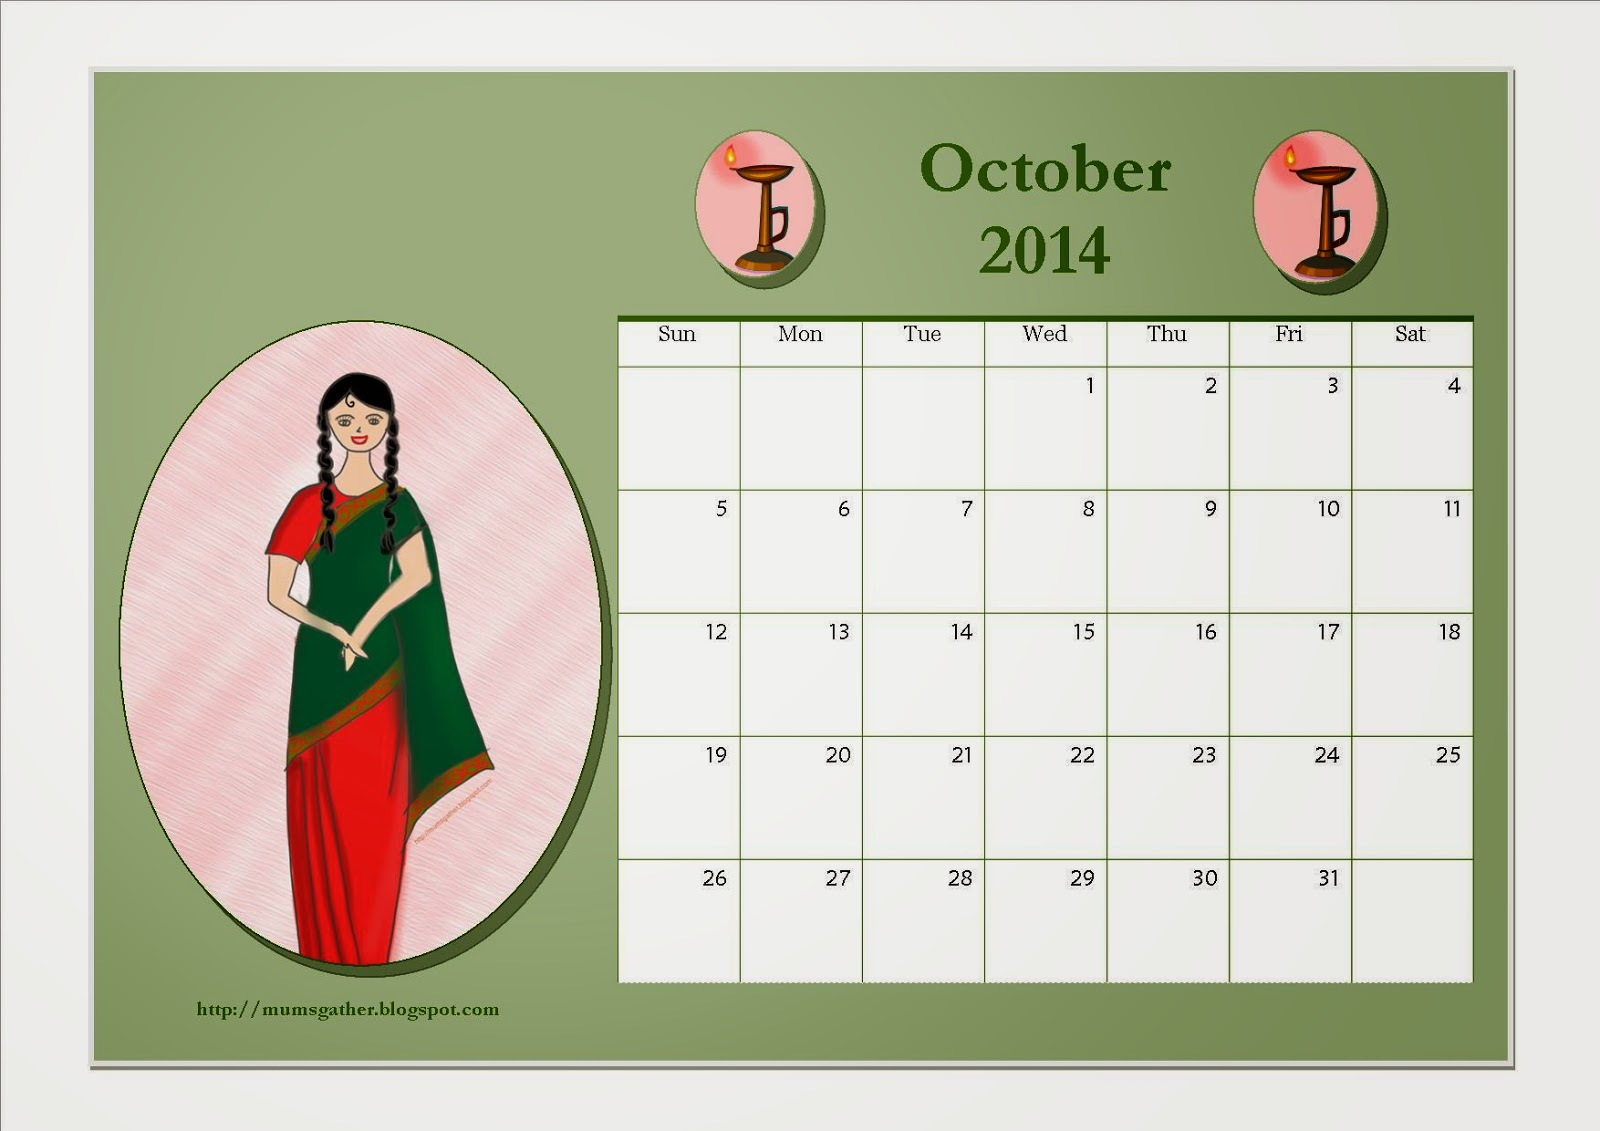 October 2014 Calendar For Kids